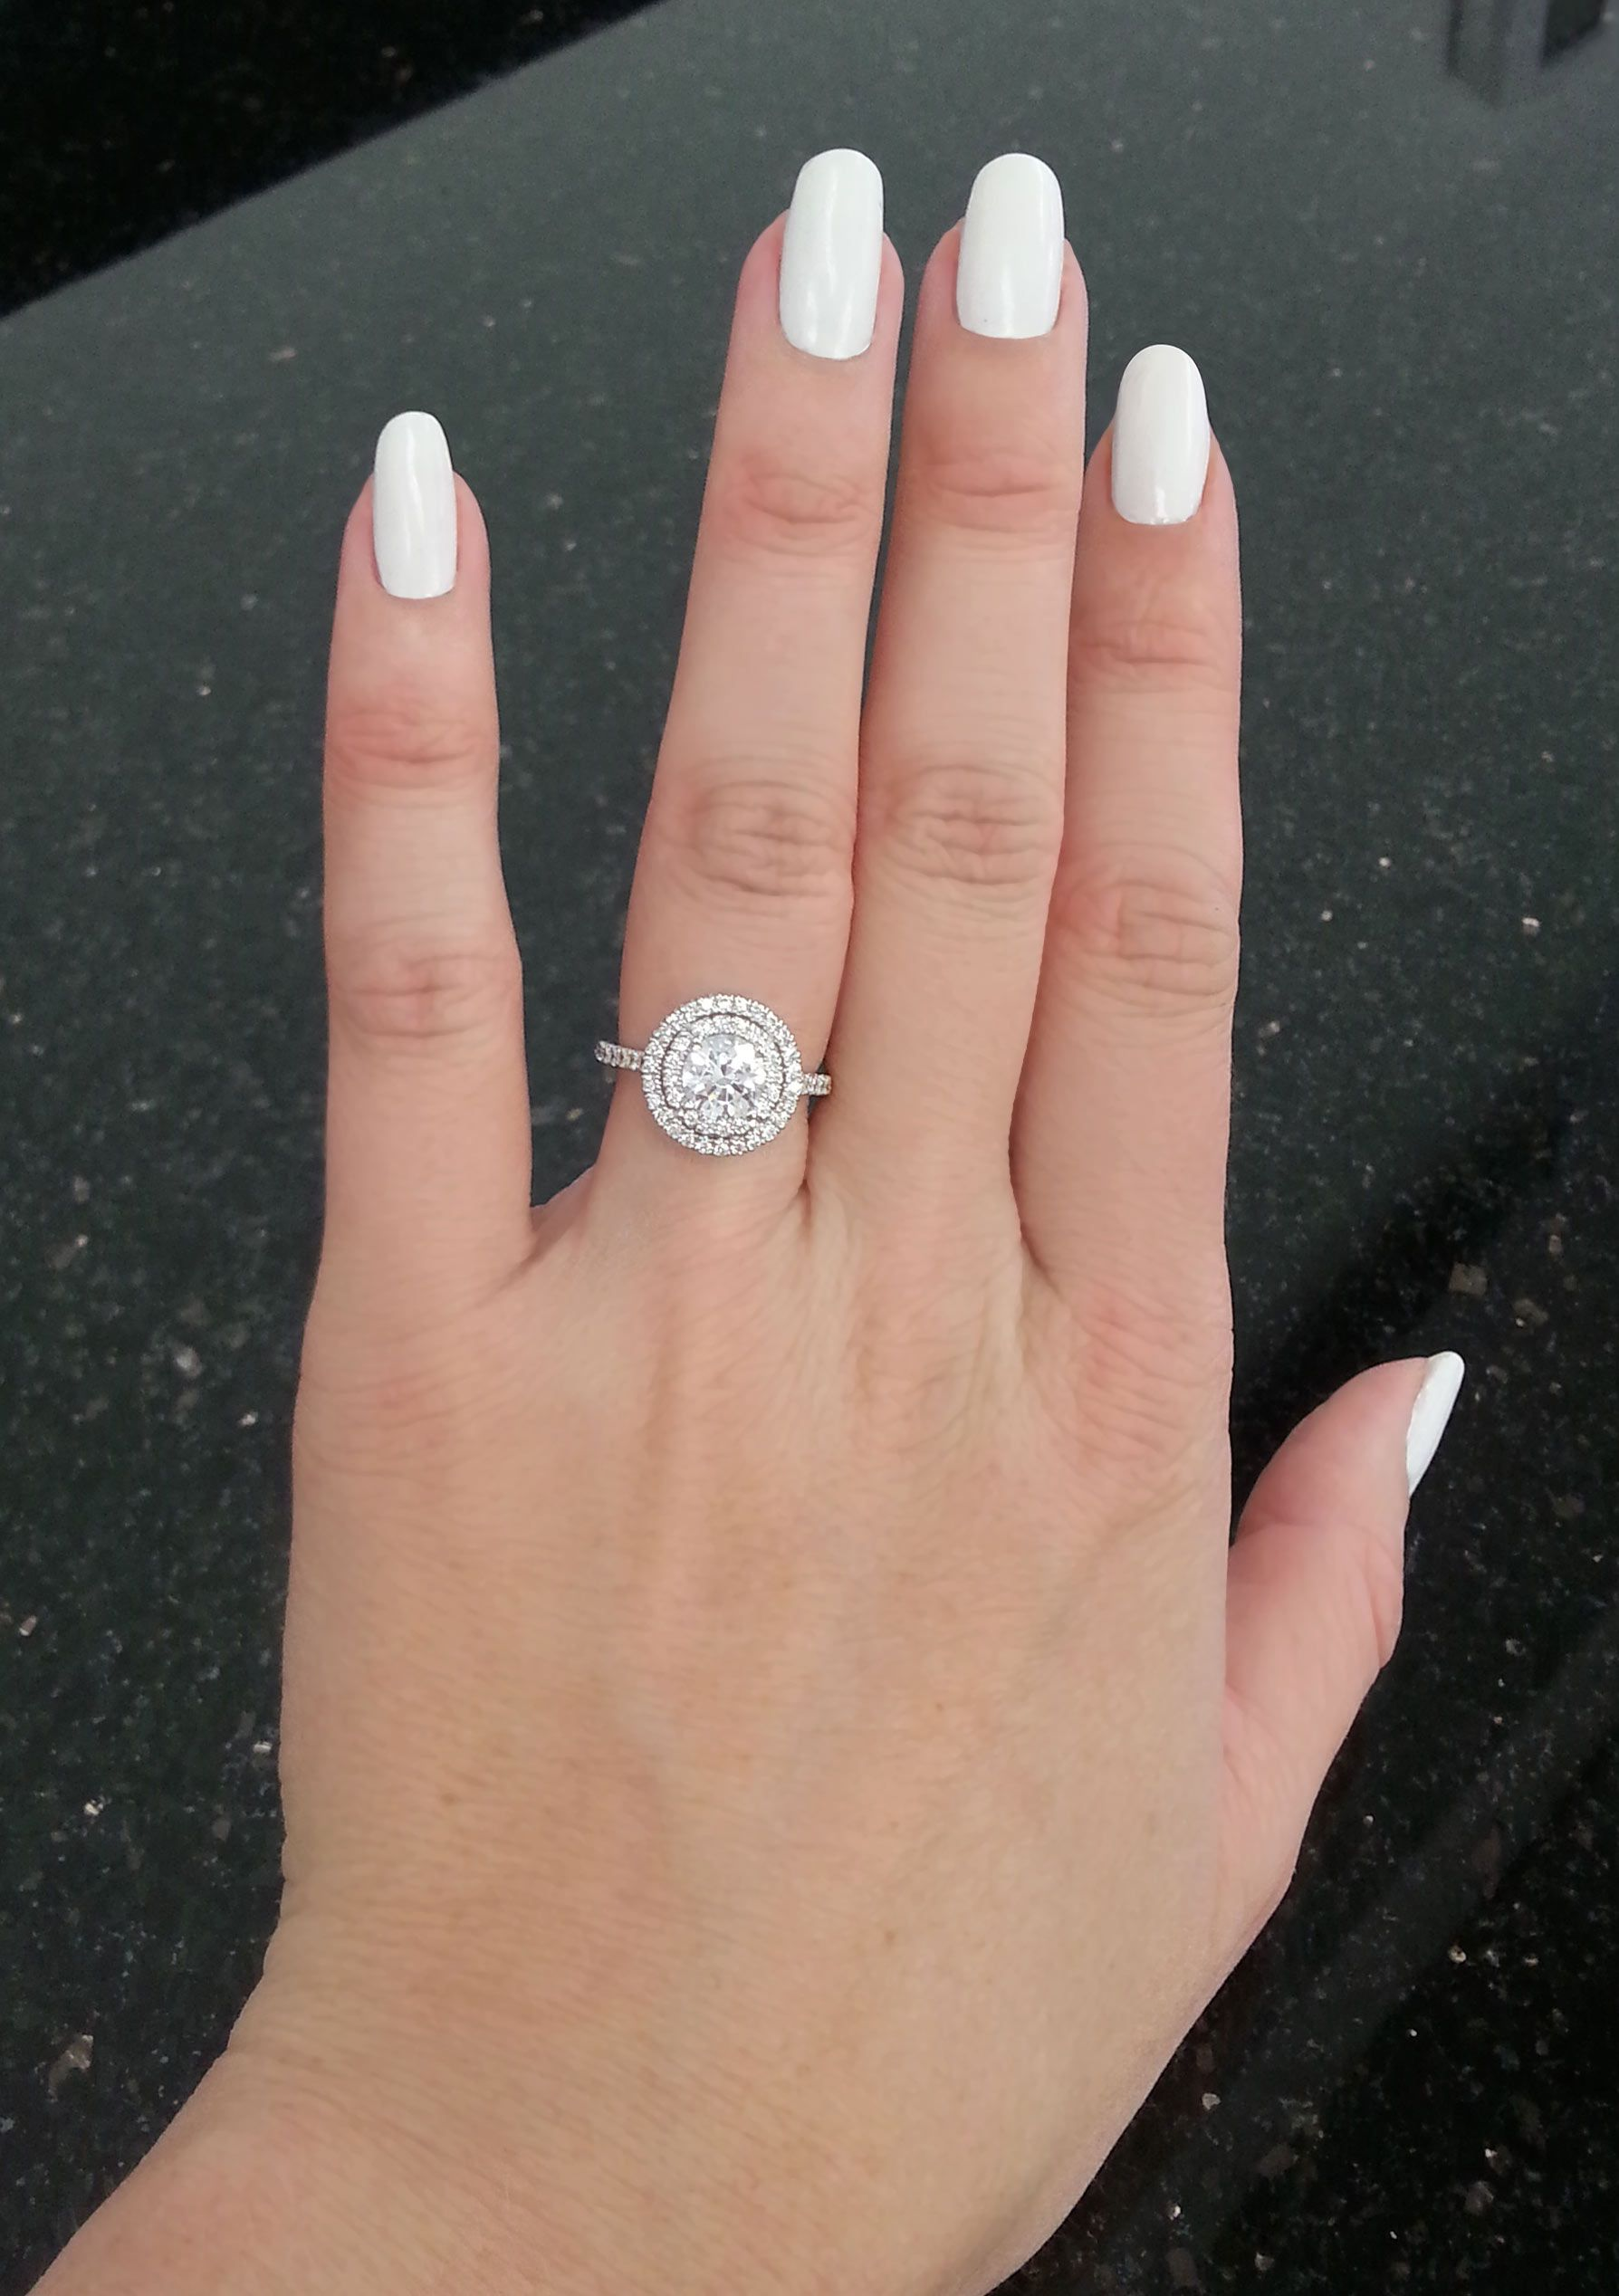 Celebrity Engagement Ring Trend Double Halos Love The Look Find Your Own Trending Engagement Rings Double Halo Engagement Ring Celebrity Engagement Rings